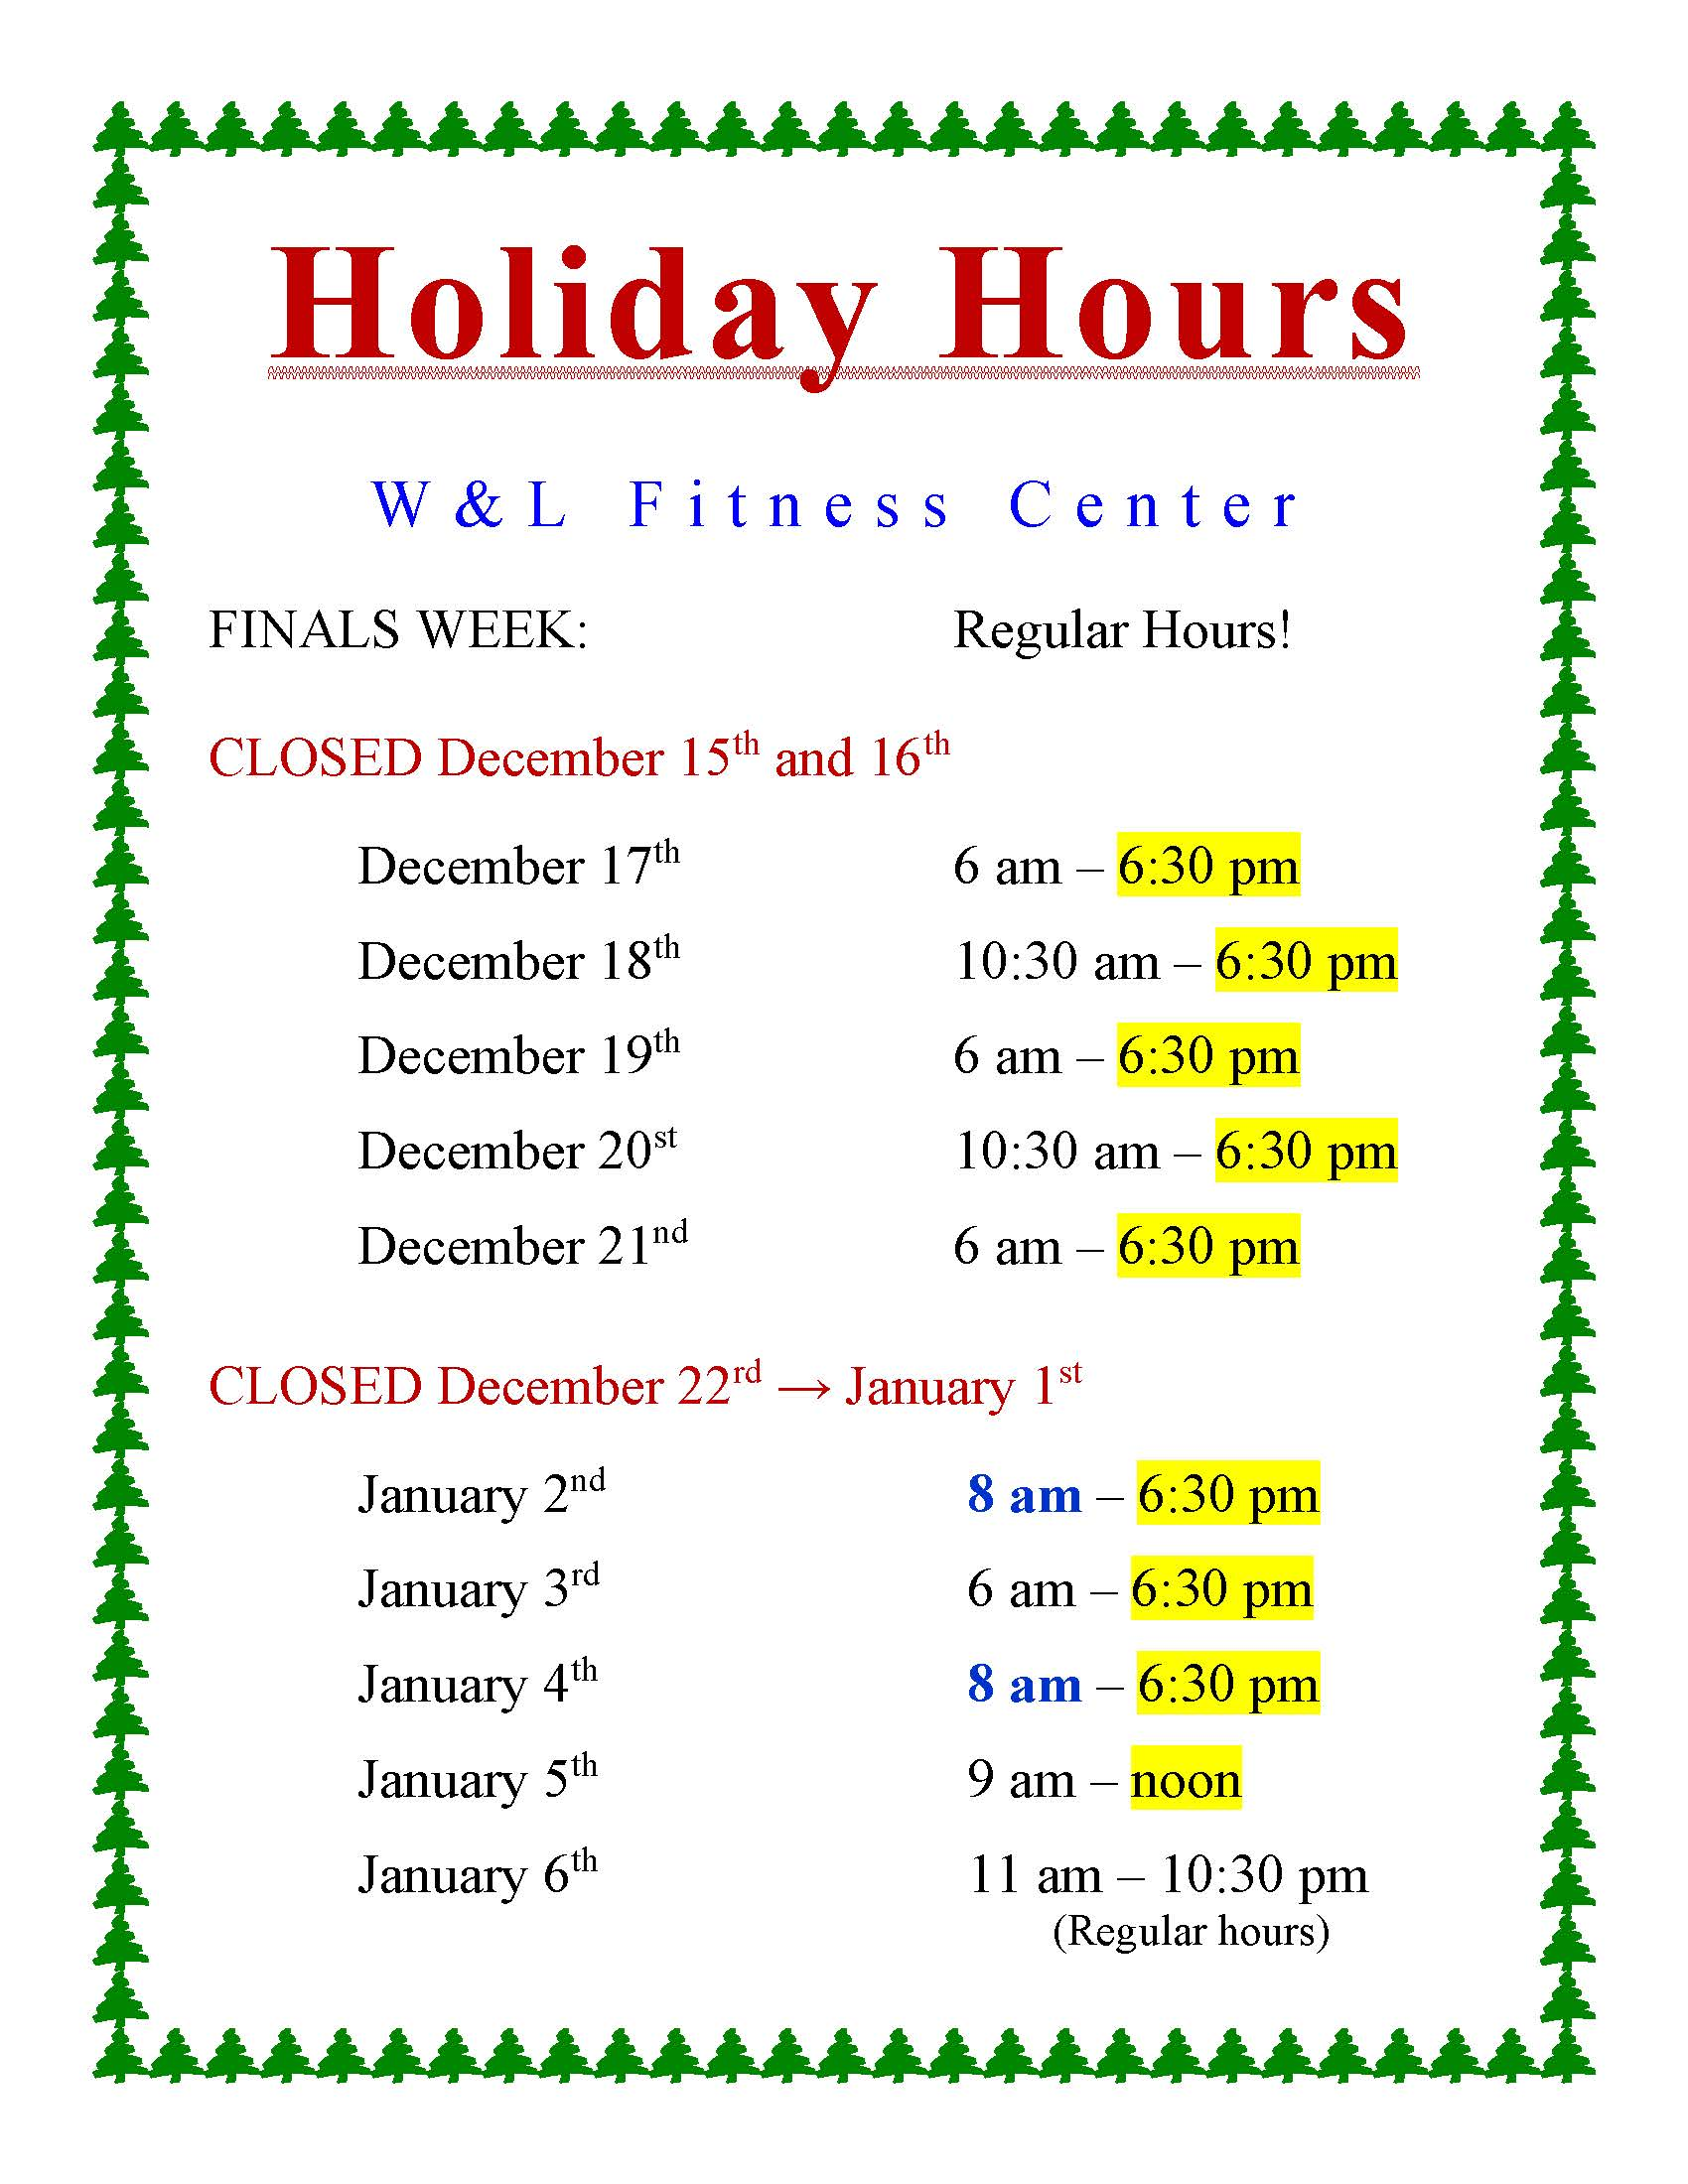 Fitness Center Holiday Hours